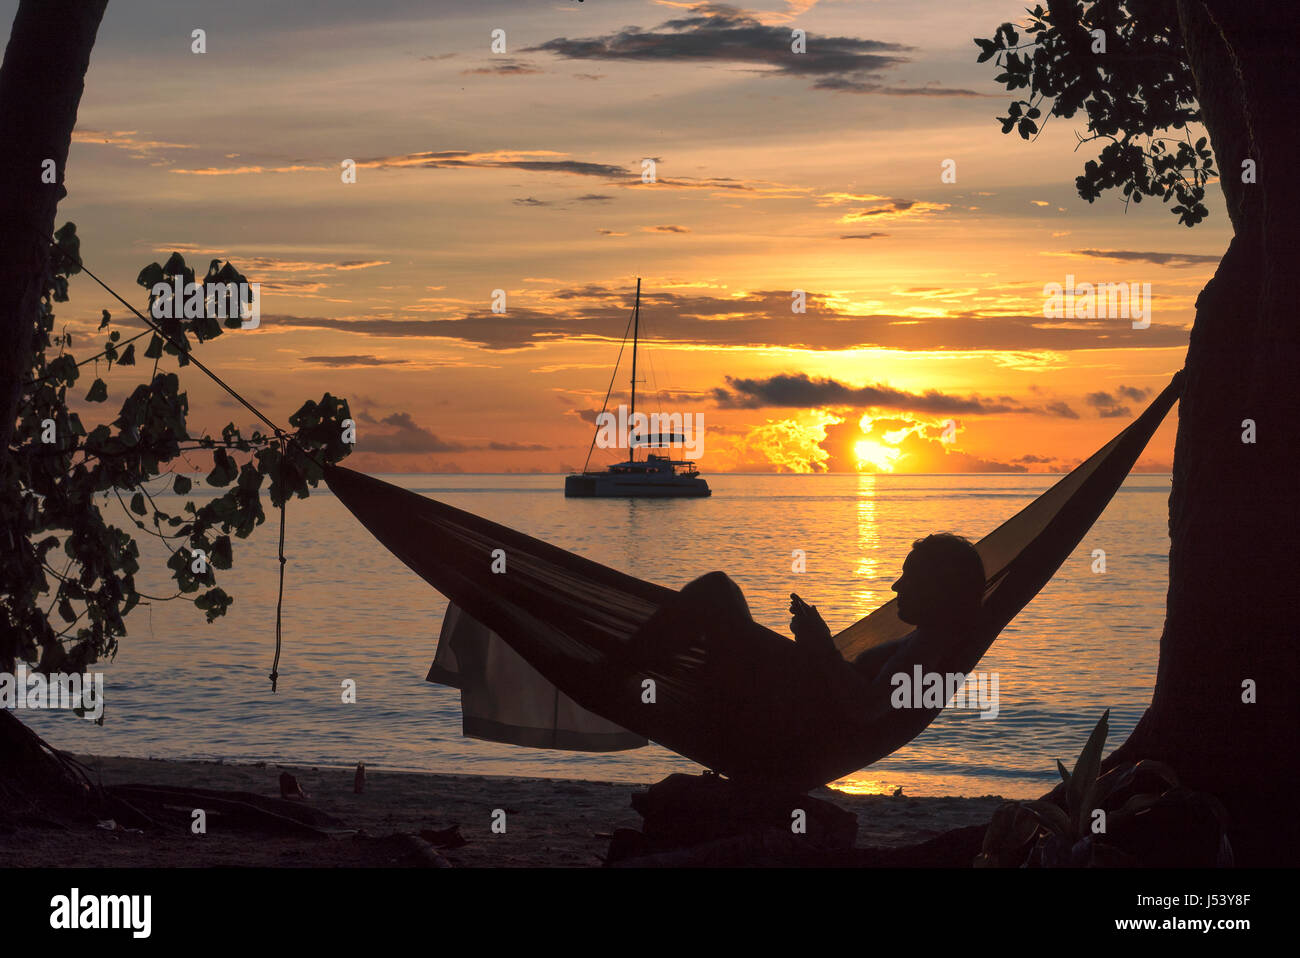 Beach vacations, silhouette of a woman reading in hammock at sunset on tropical island. - Stock Image